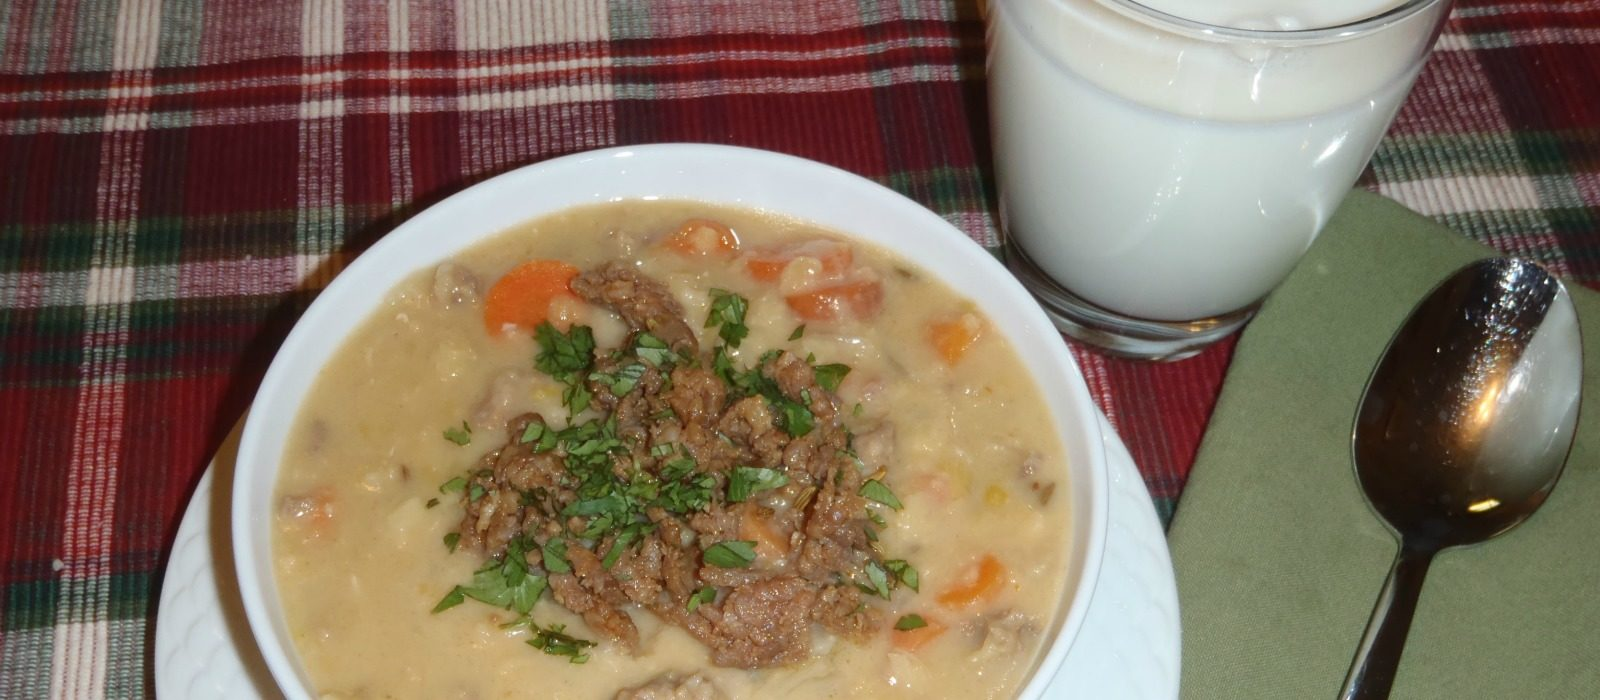 Creamy Lentil Soup with Spicy Italian Sausage and Toasted Fennel Seeds